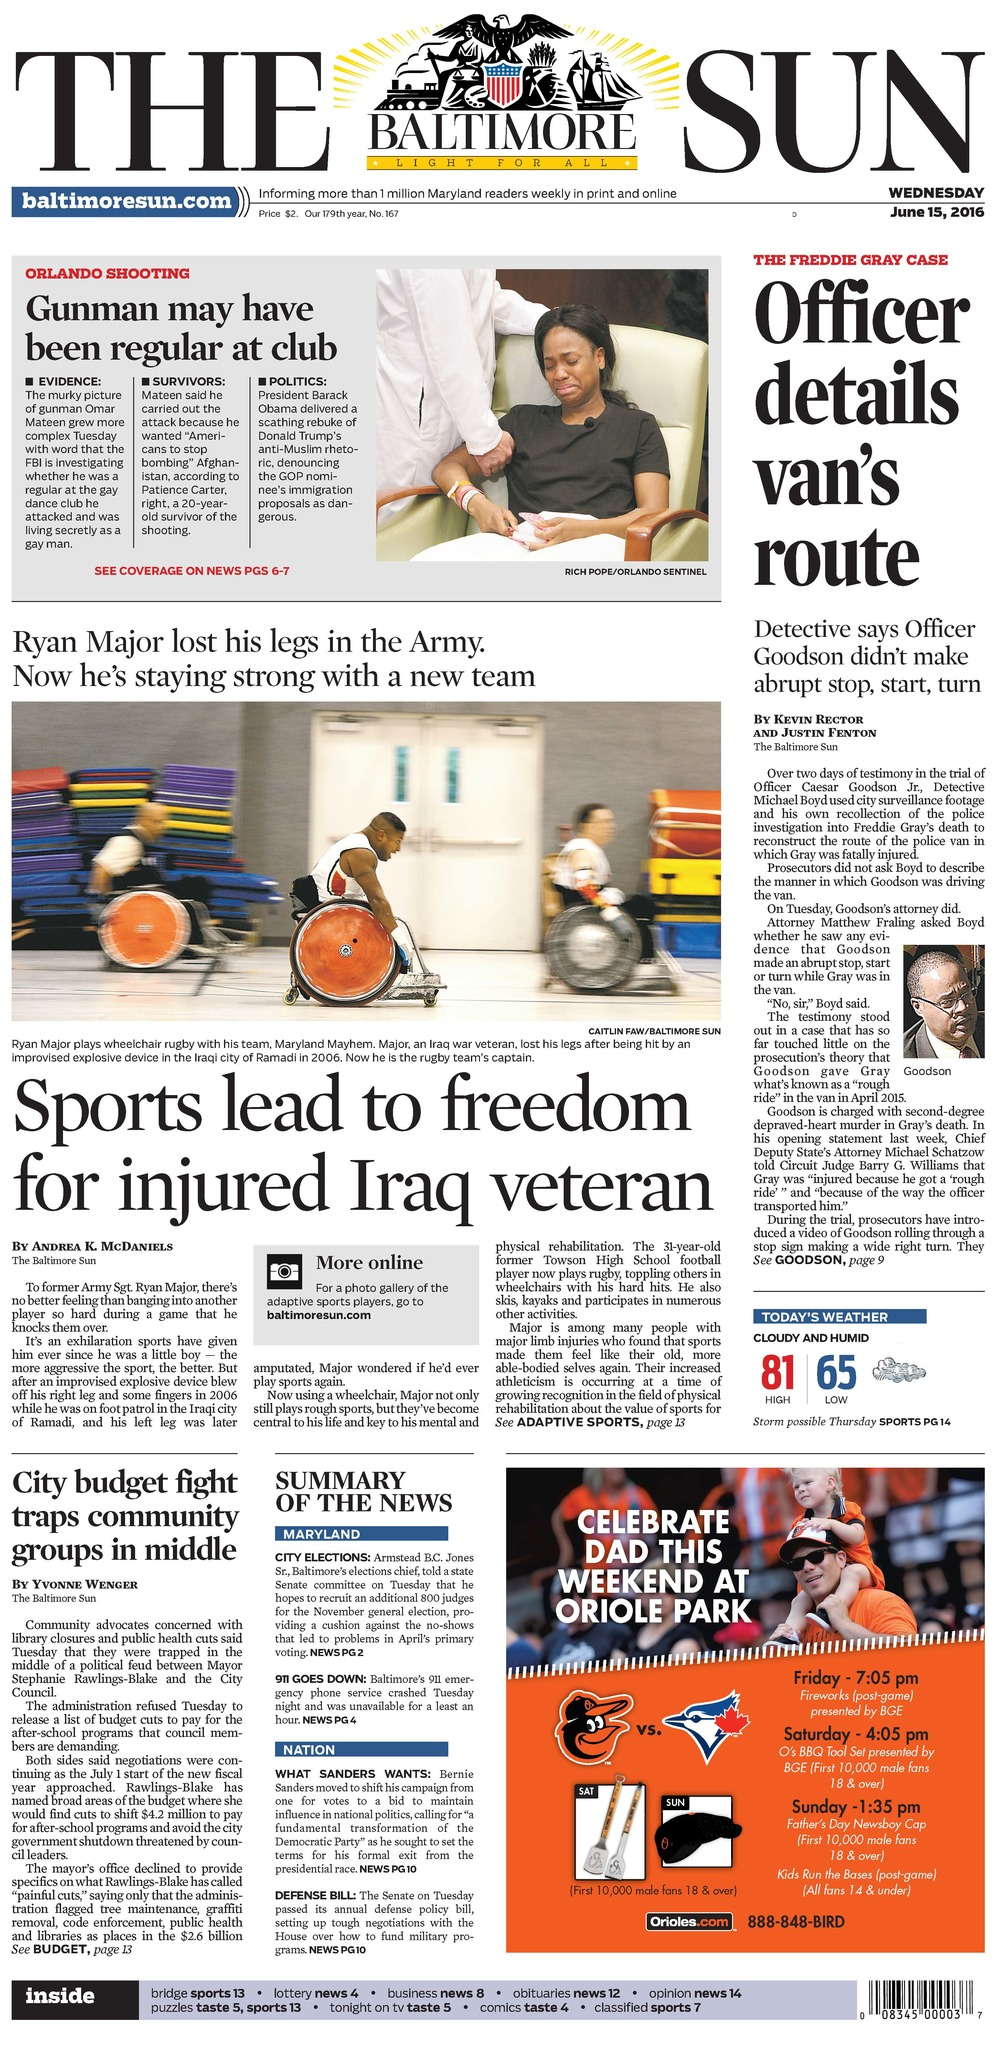 The Baltimore Sun   Wednesday, June 15, 2016